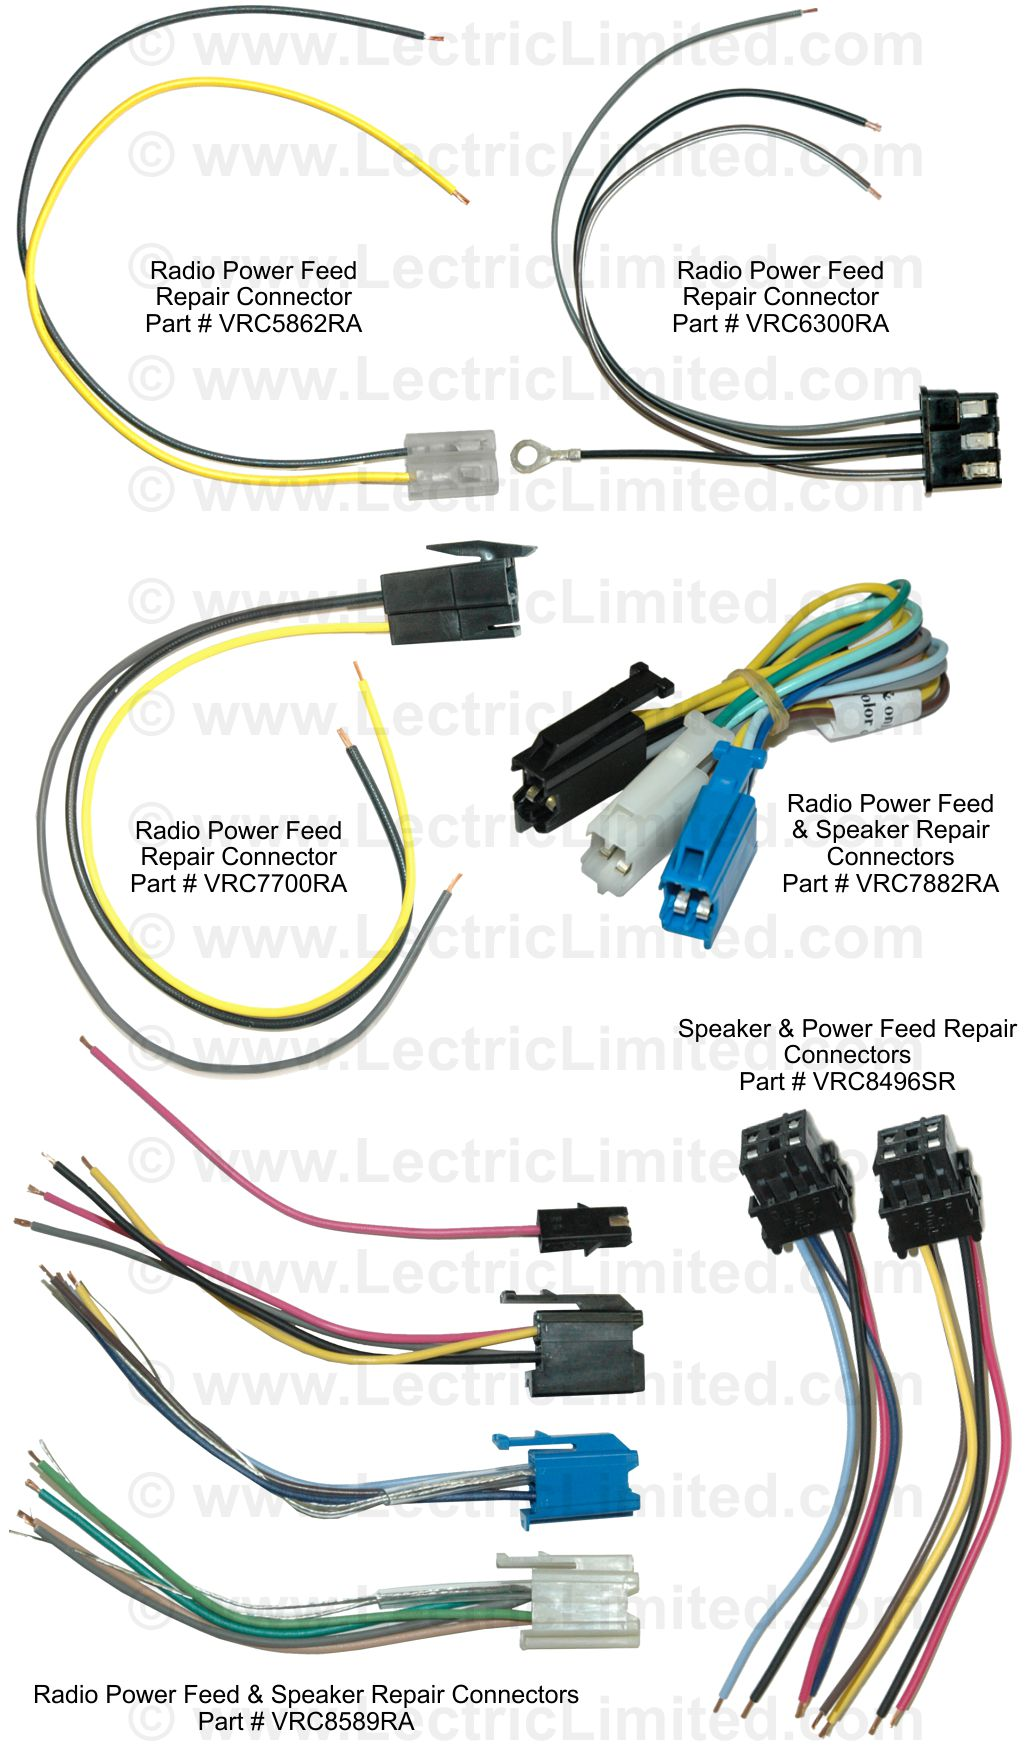 Repair Components You Are Here Home Wiring Harness Kits For Old Cars Radio Speaker Connector Pigtails